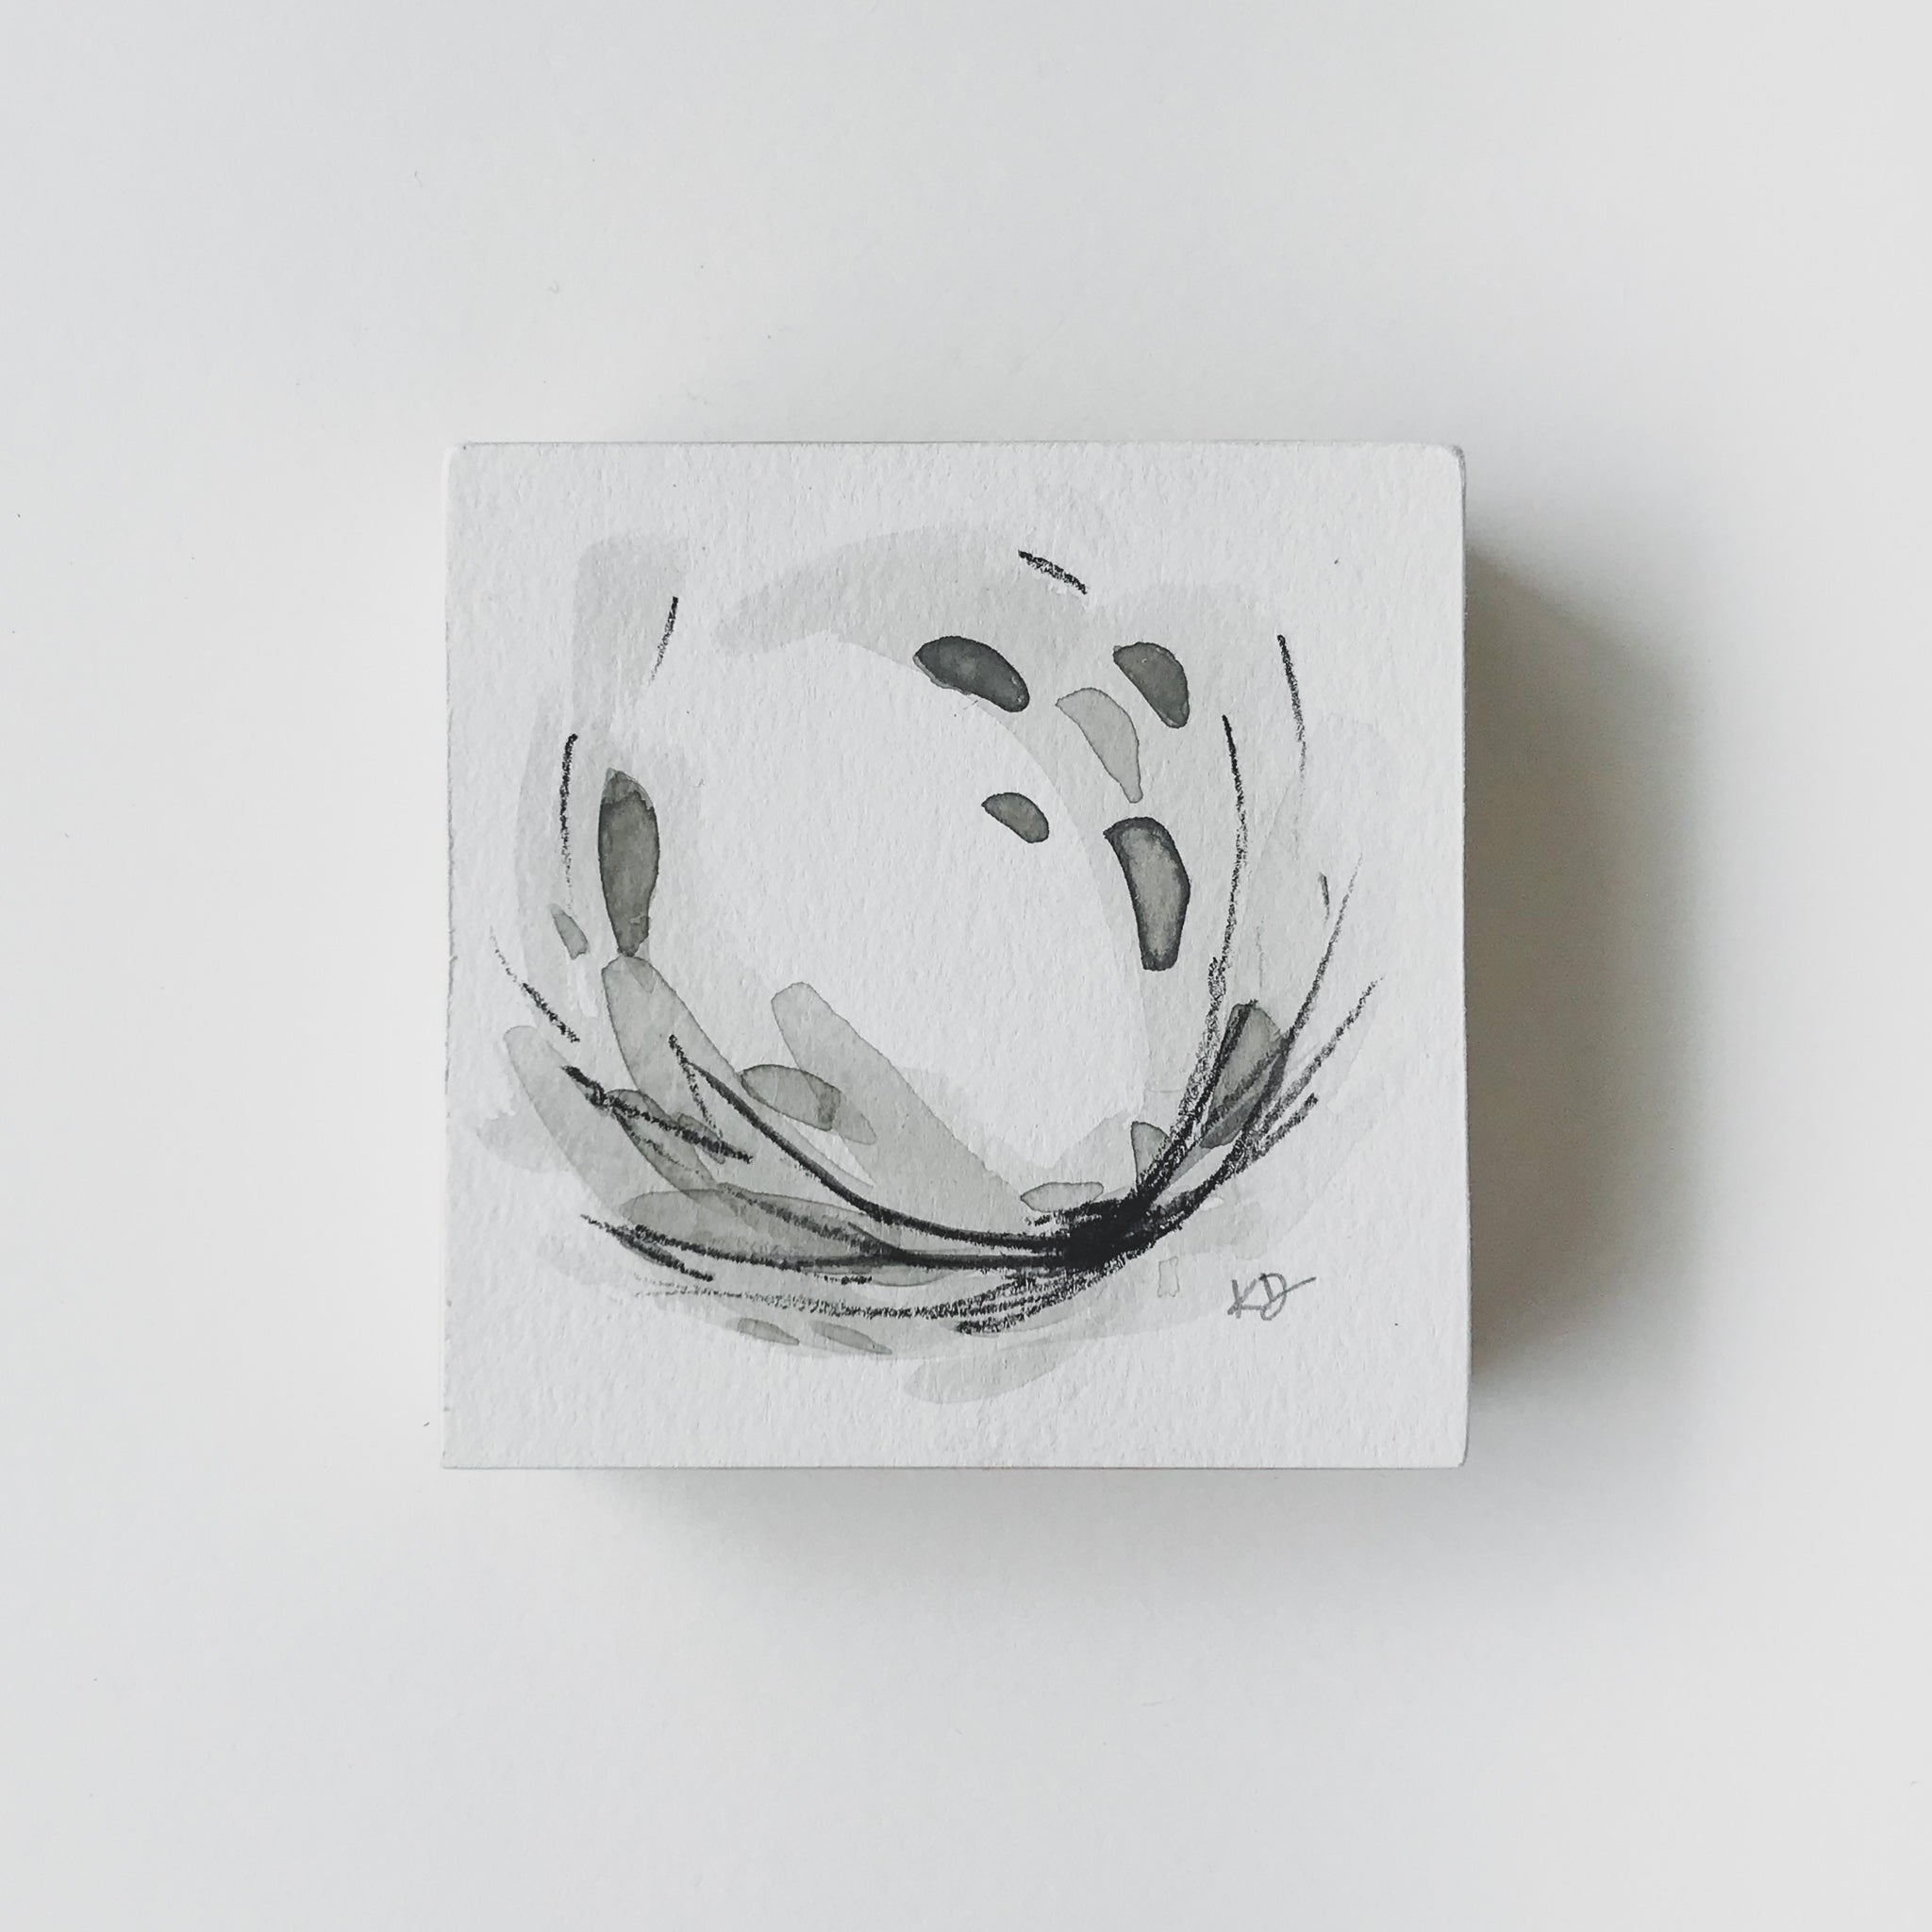 Neutral Series 10 - Minimal Abstract art mounted to wood block, ready to hang or stand. by kait dewolff @kaitcreative $48CAD